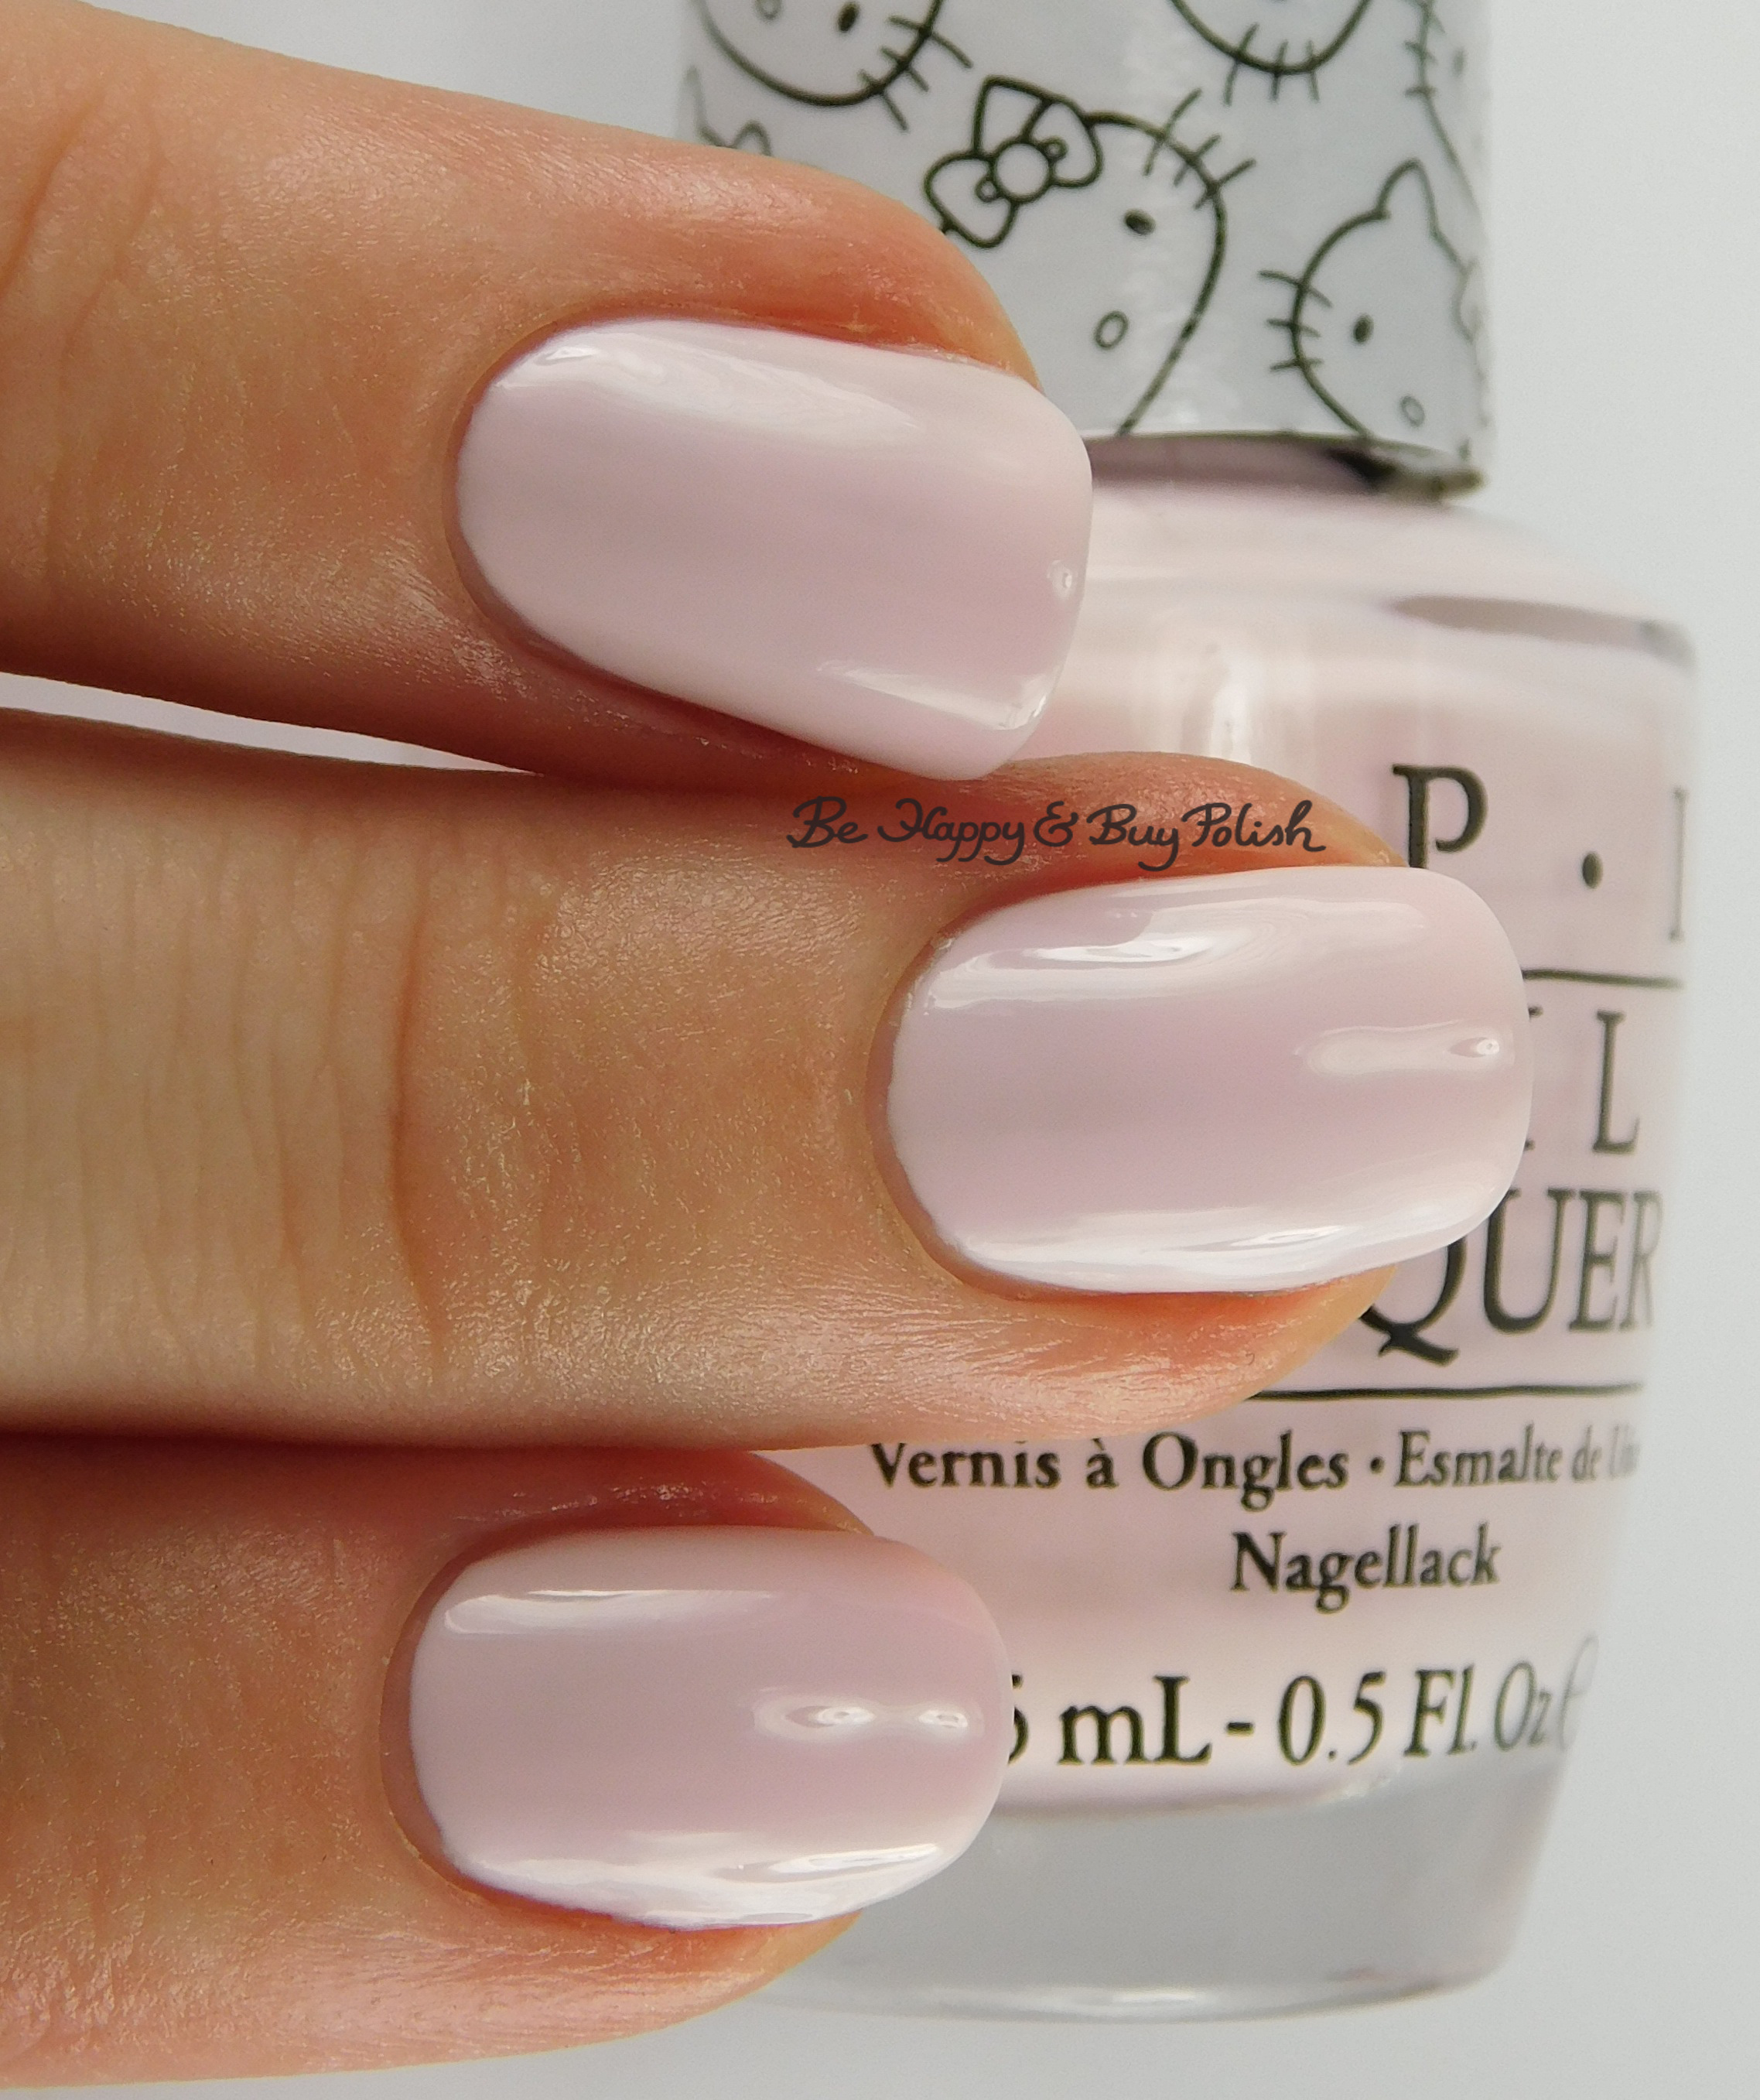 Powder Nail Polish Near Me: Opi Nail Polish For Sale Near Me